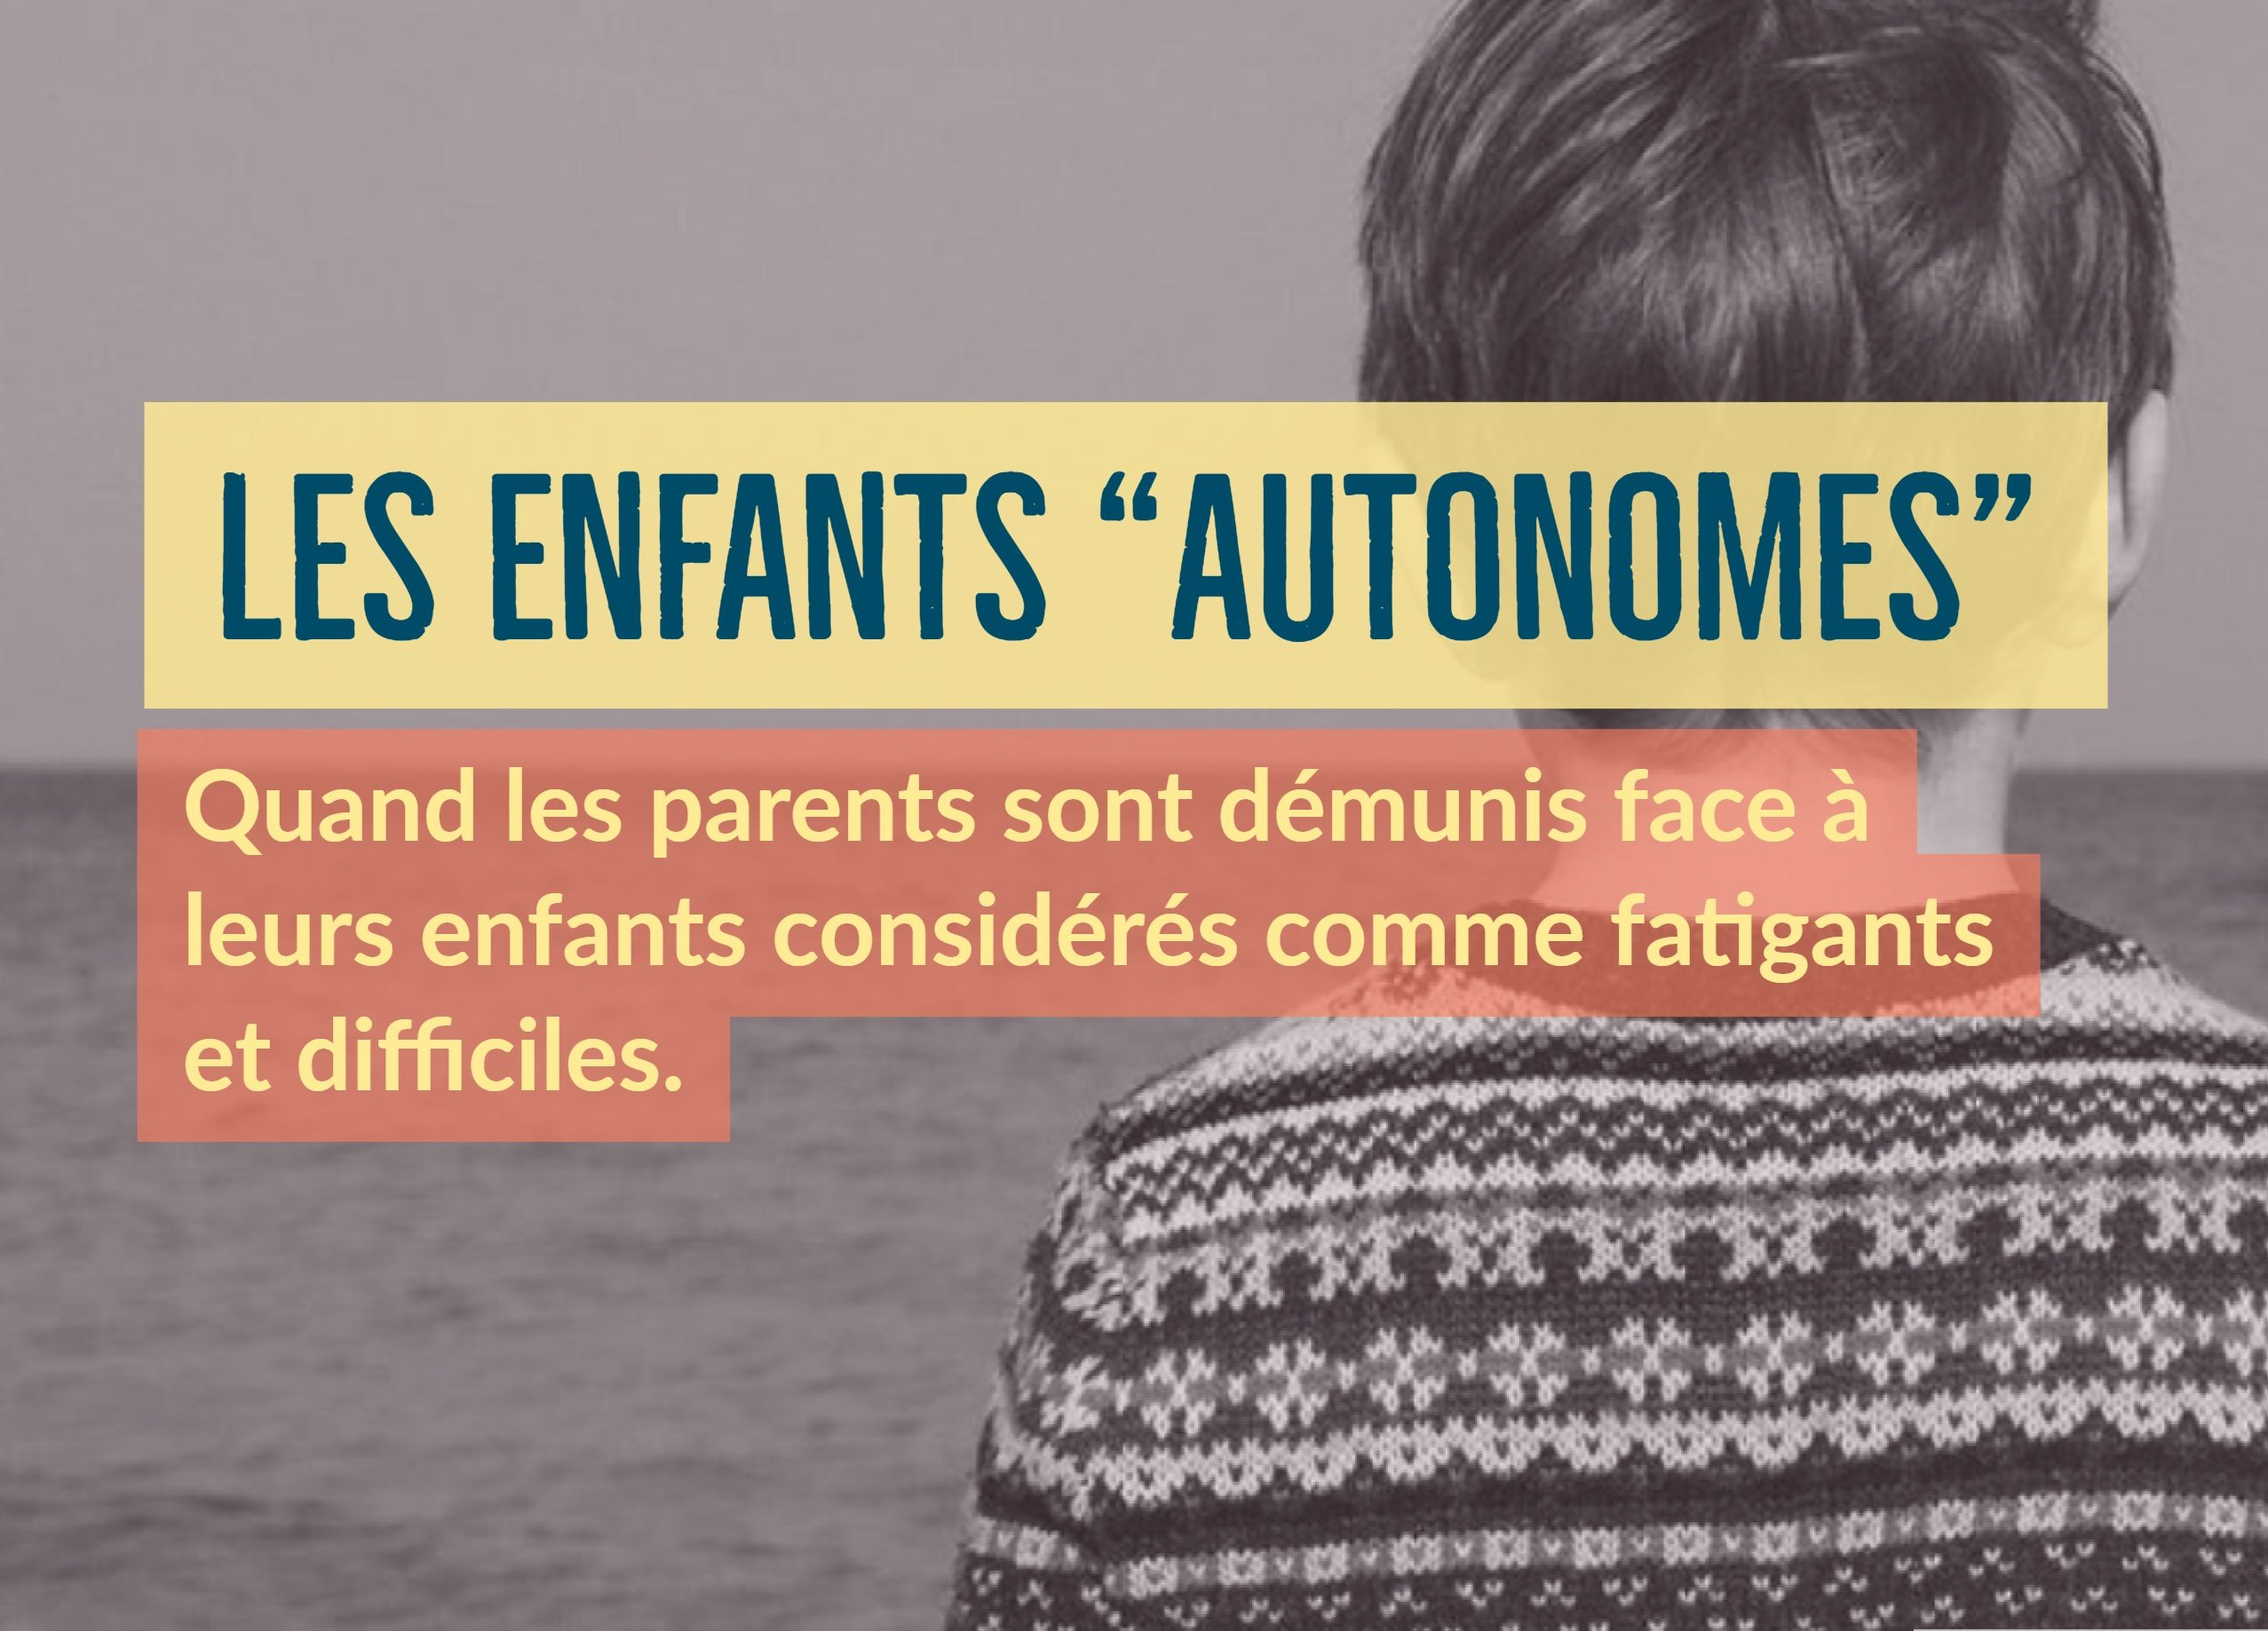 enfants autonomes parents démunis enfants fatigants difficiles